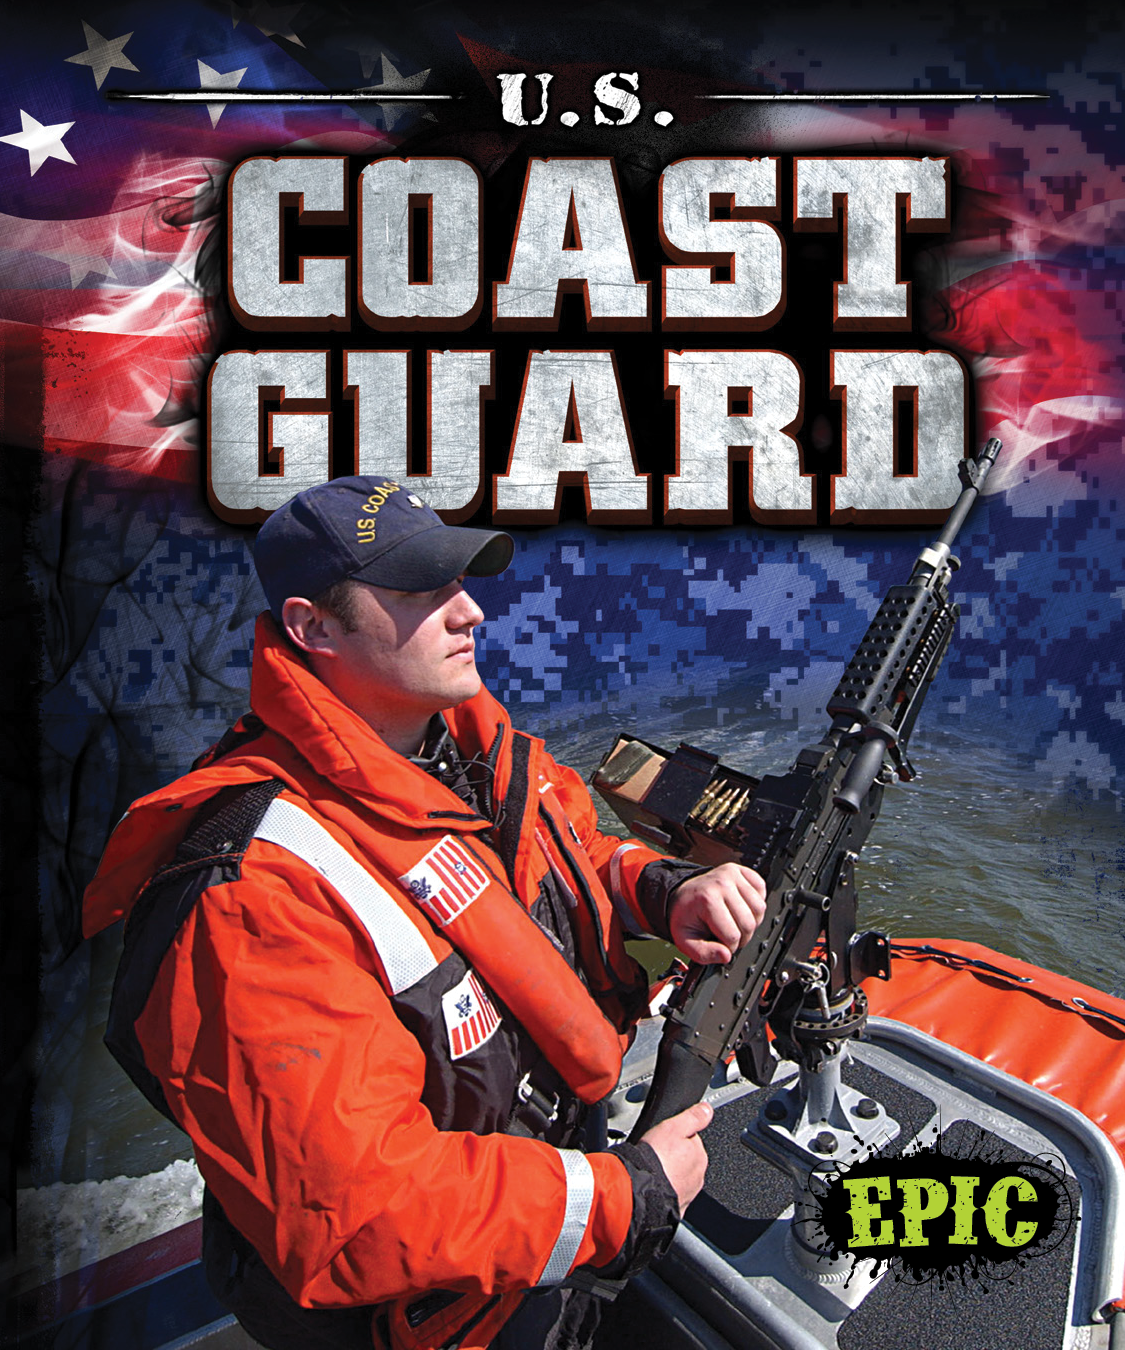 U.S. Coast Guard By Nick Gordon